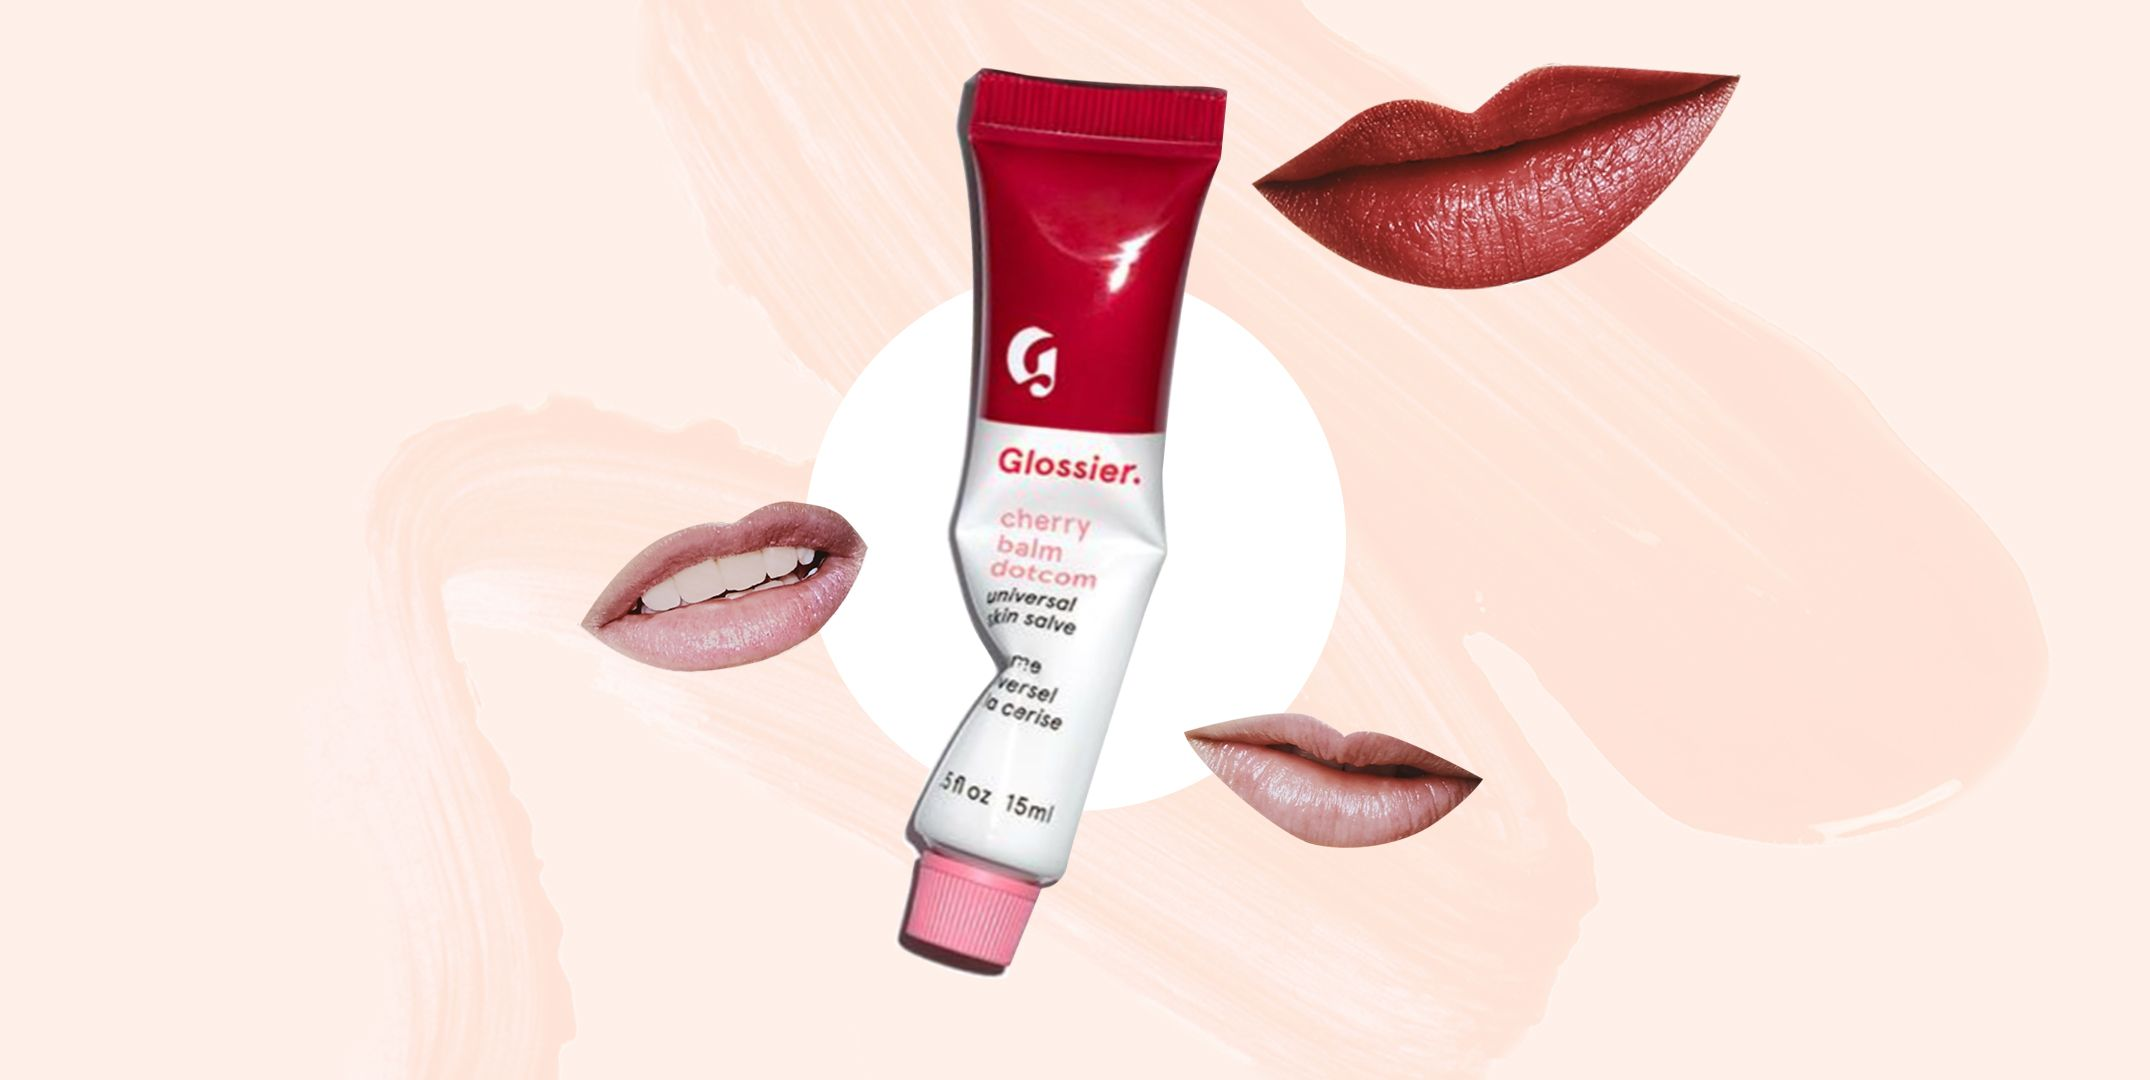 I Ranked Every Glossier Balm Dotcom Flavor for You